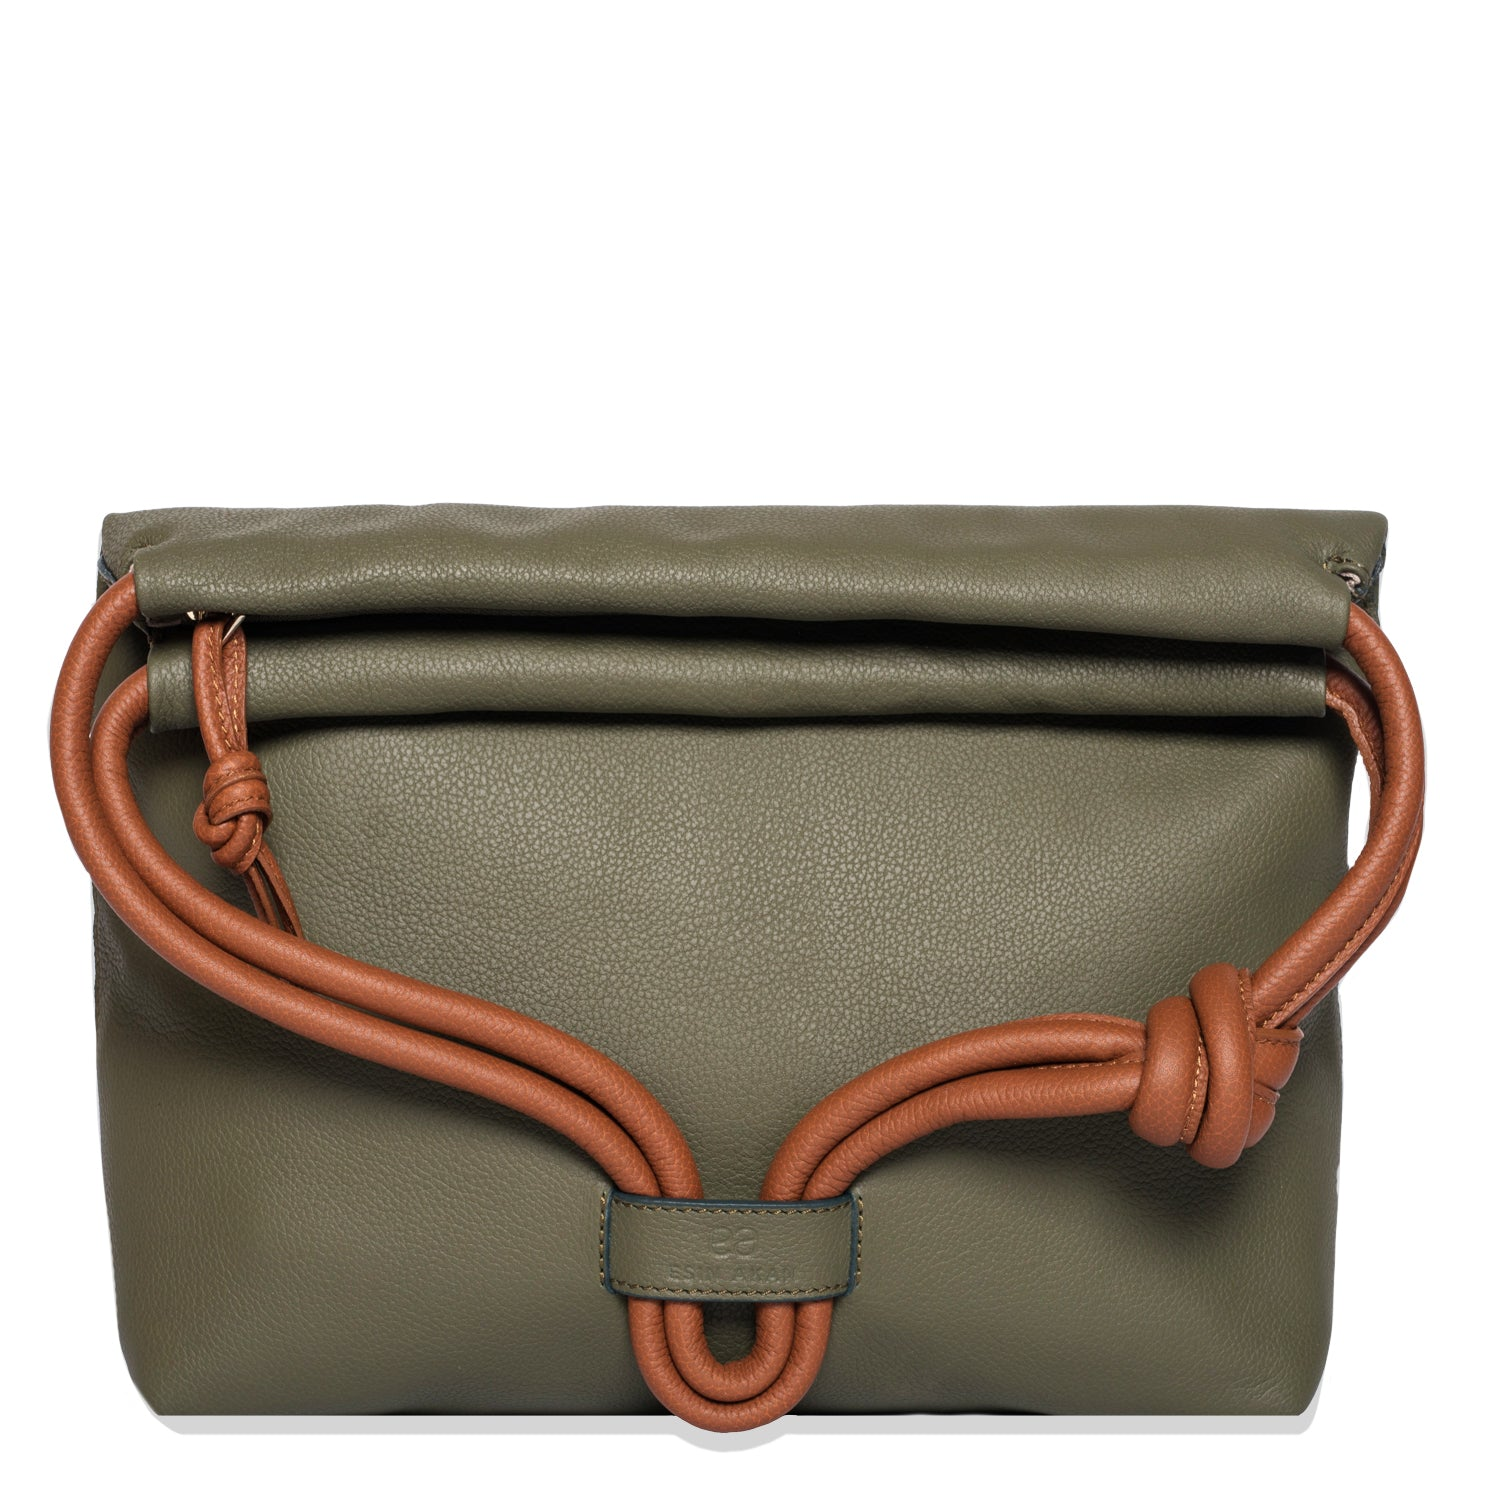 A convertible leather green shoulder bag for women with a knot detail on the strap shown as a clutch bag, front image.